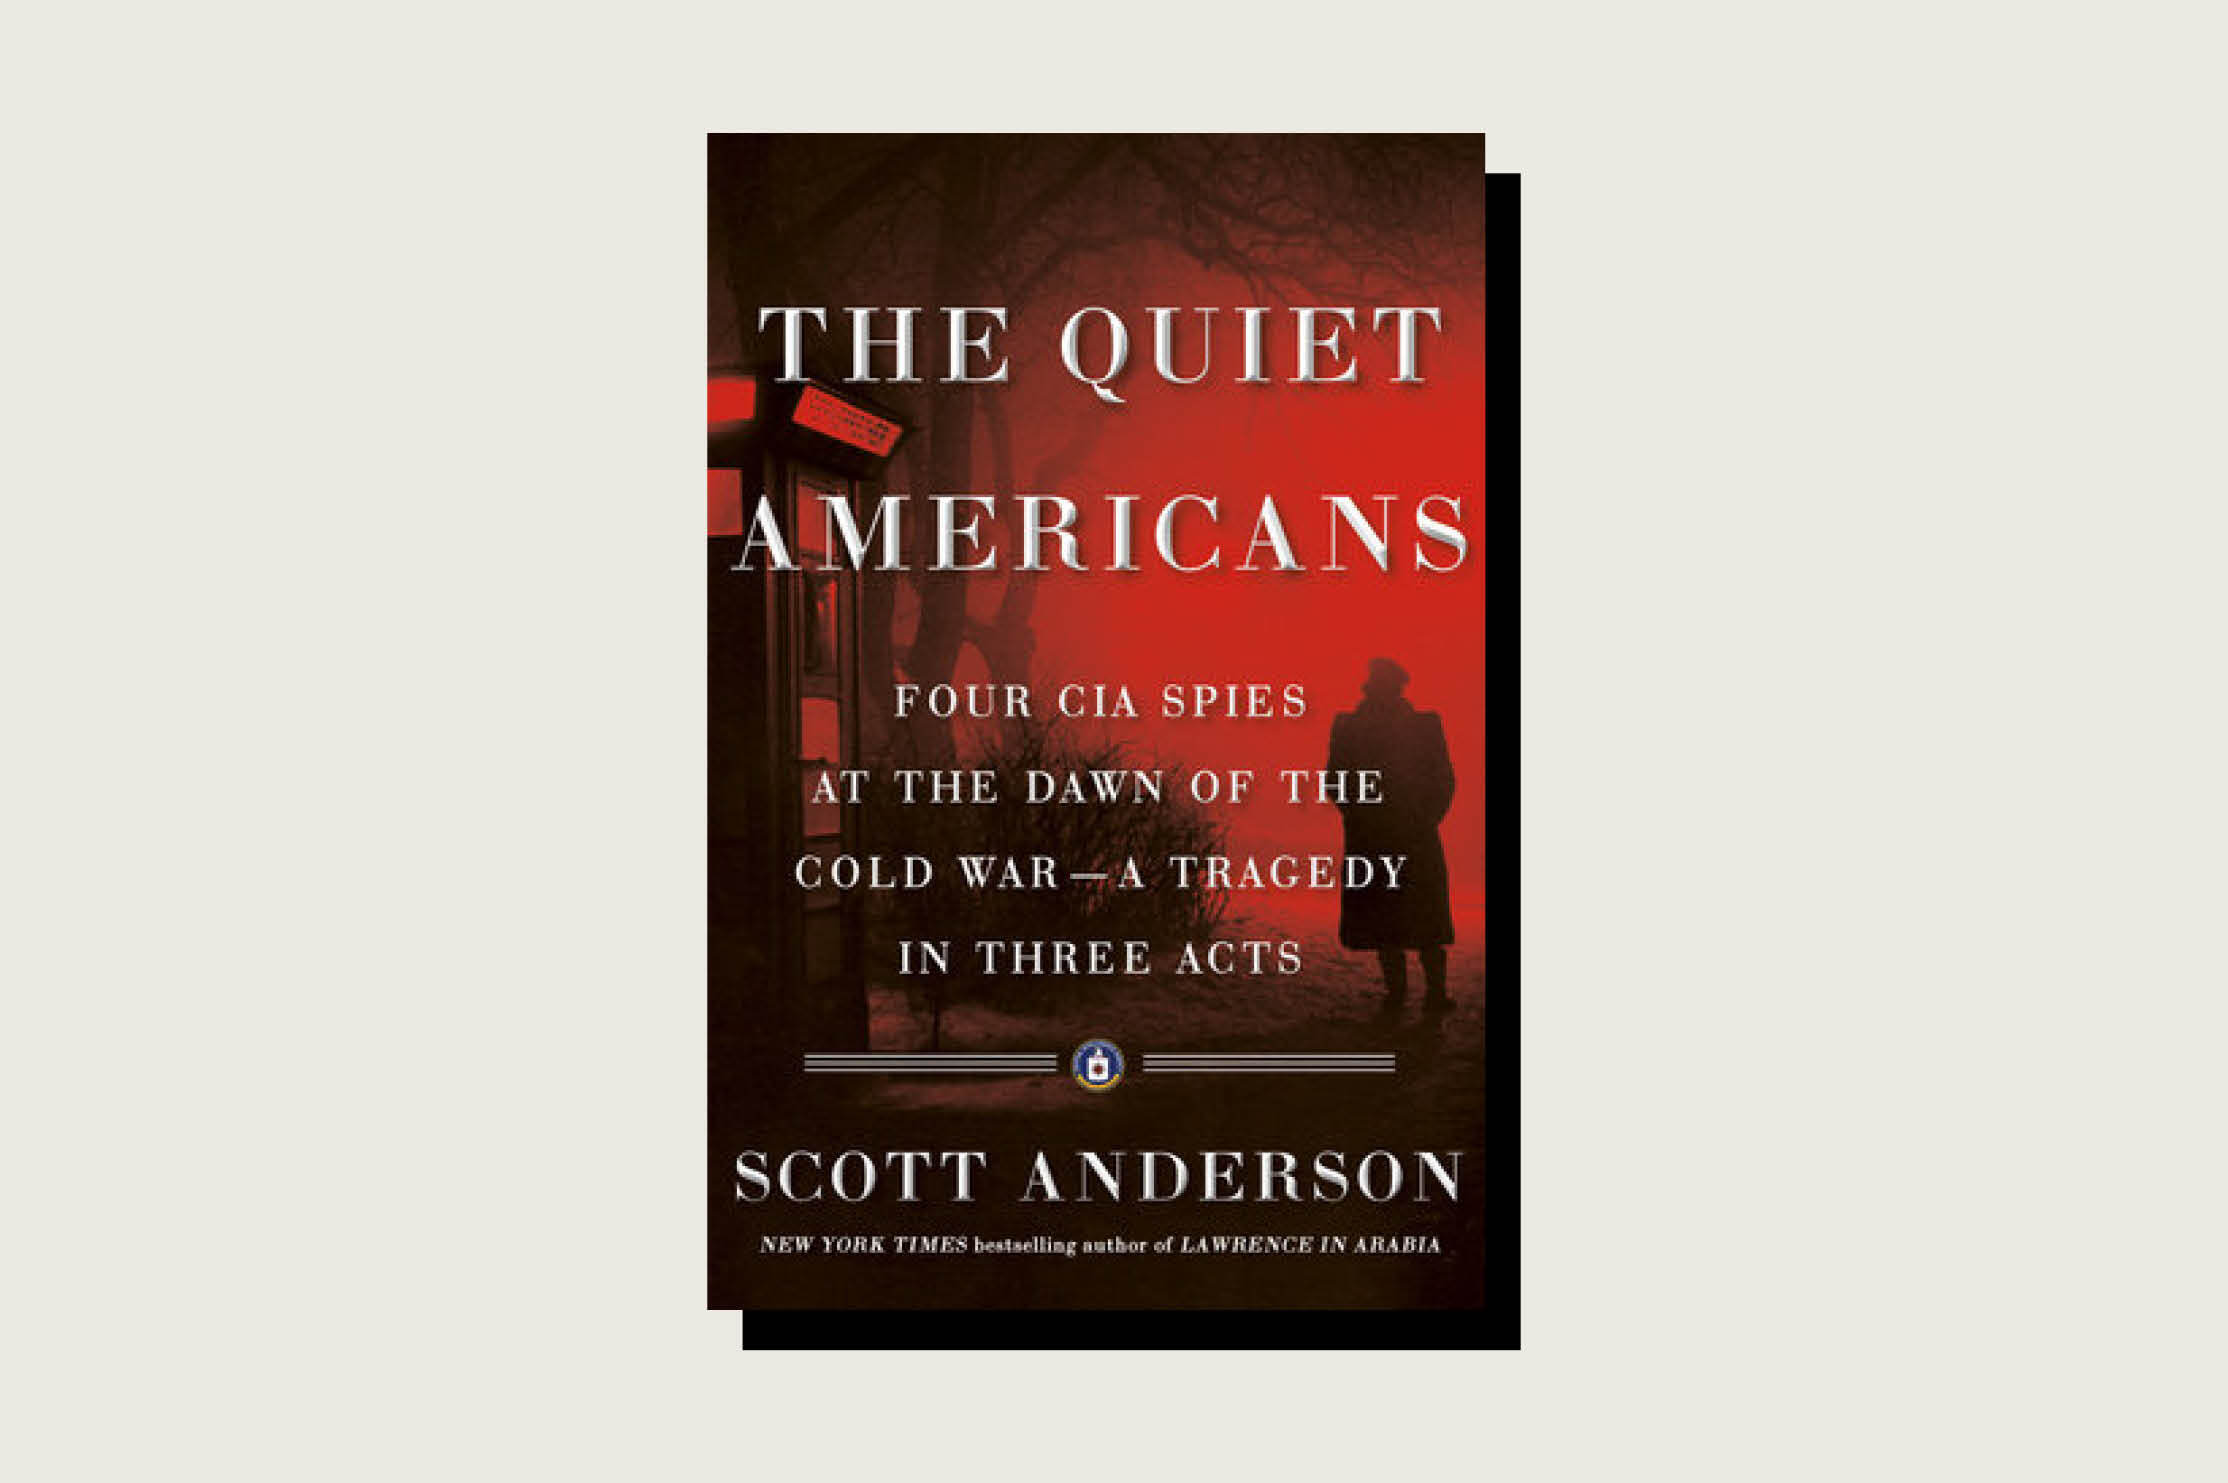 The Quiet Americans: Four CIA Spies at the Dawn of the Cold War--a Tragedy in Three Acts, Scott Anderson, Penguin Random House, Sept. 2020, .